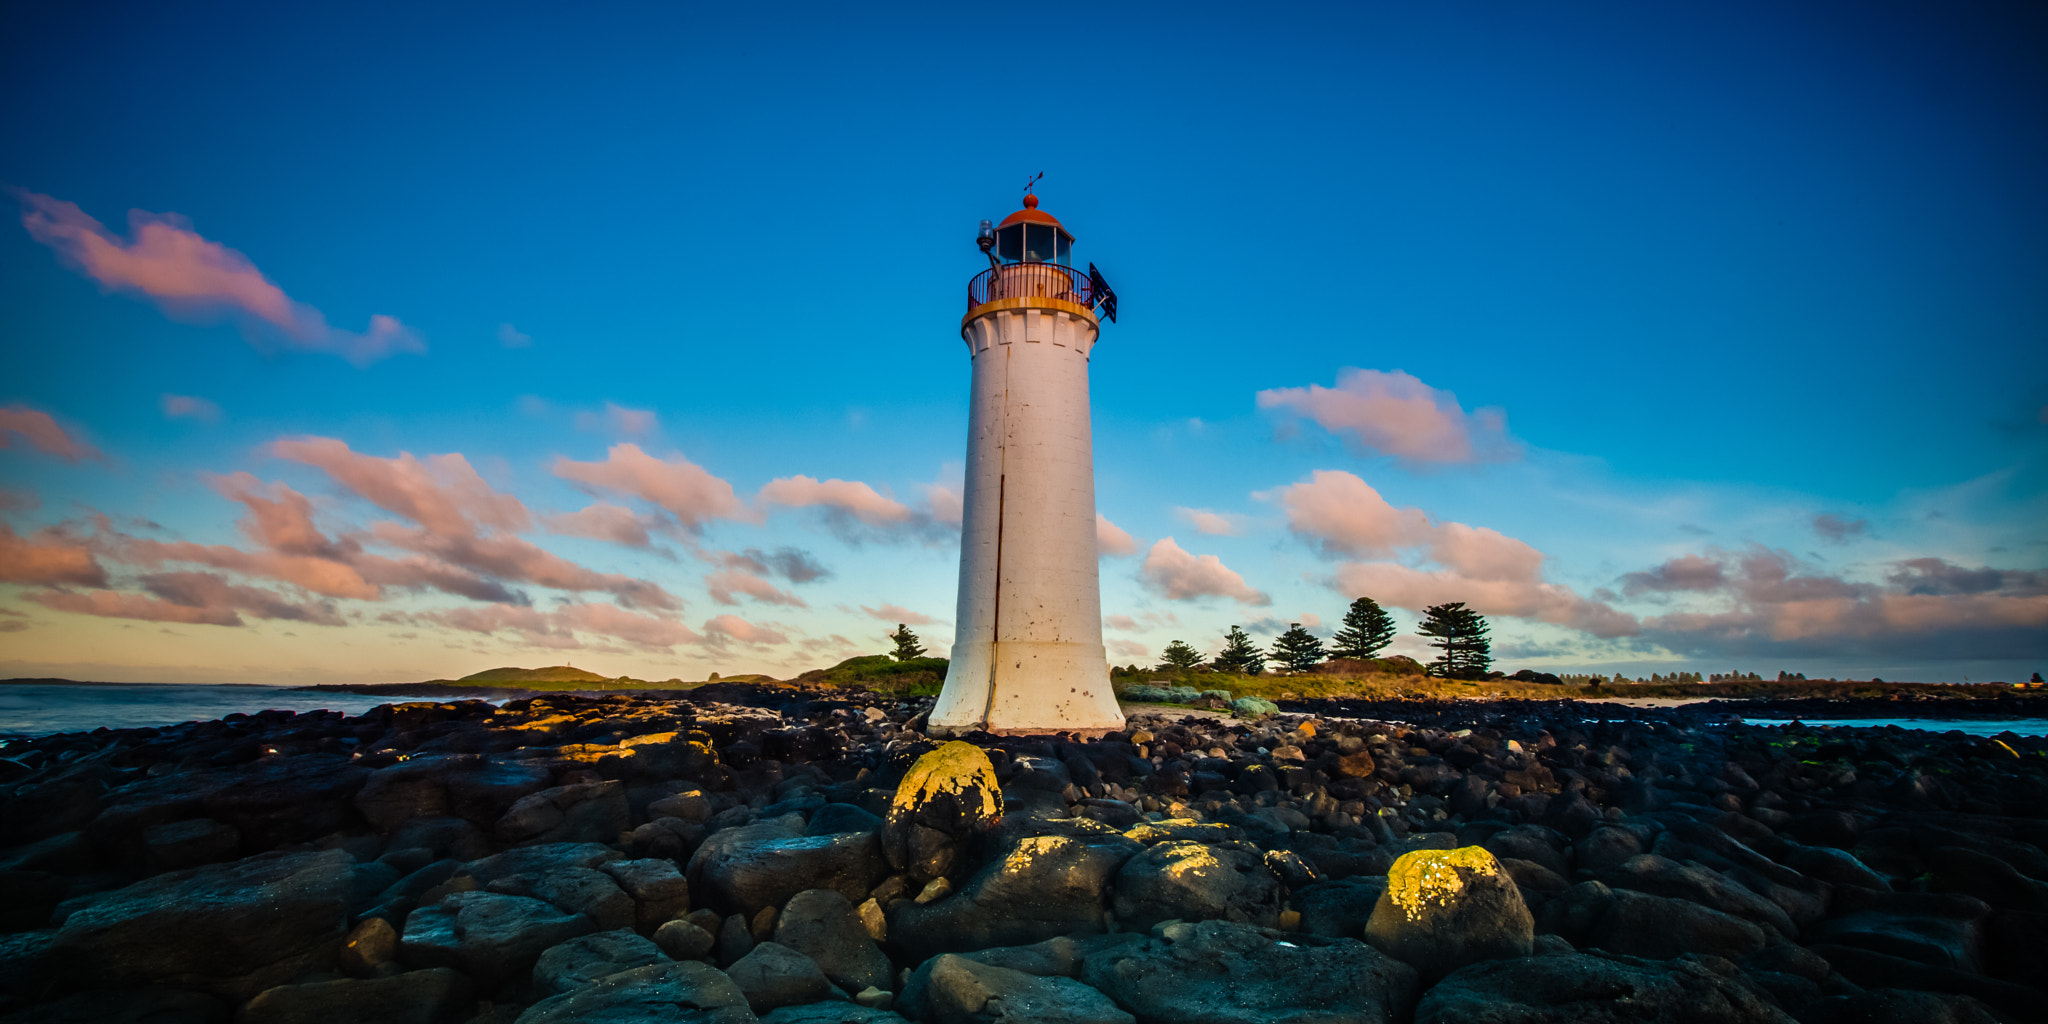 Photograph Port Fairy lighthouse moving low clouds sunrise by Oat Vaiyaboon on 500px